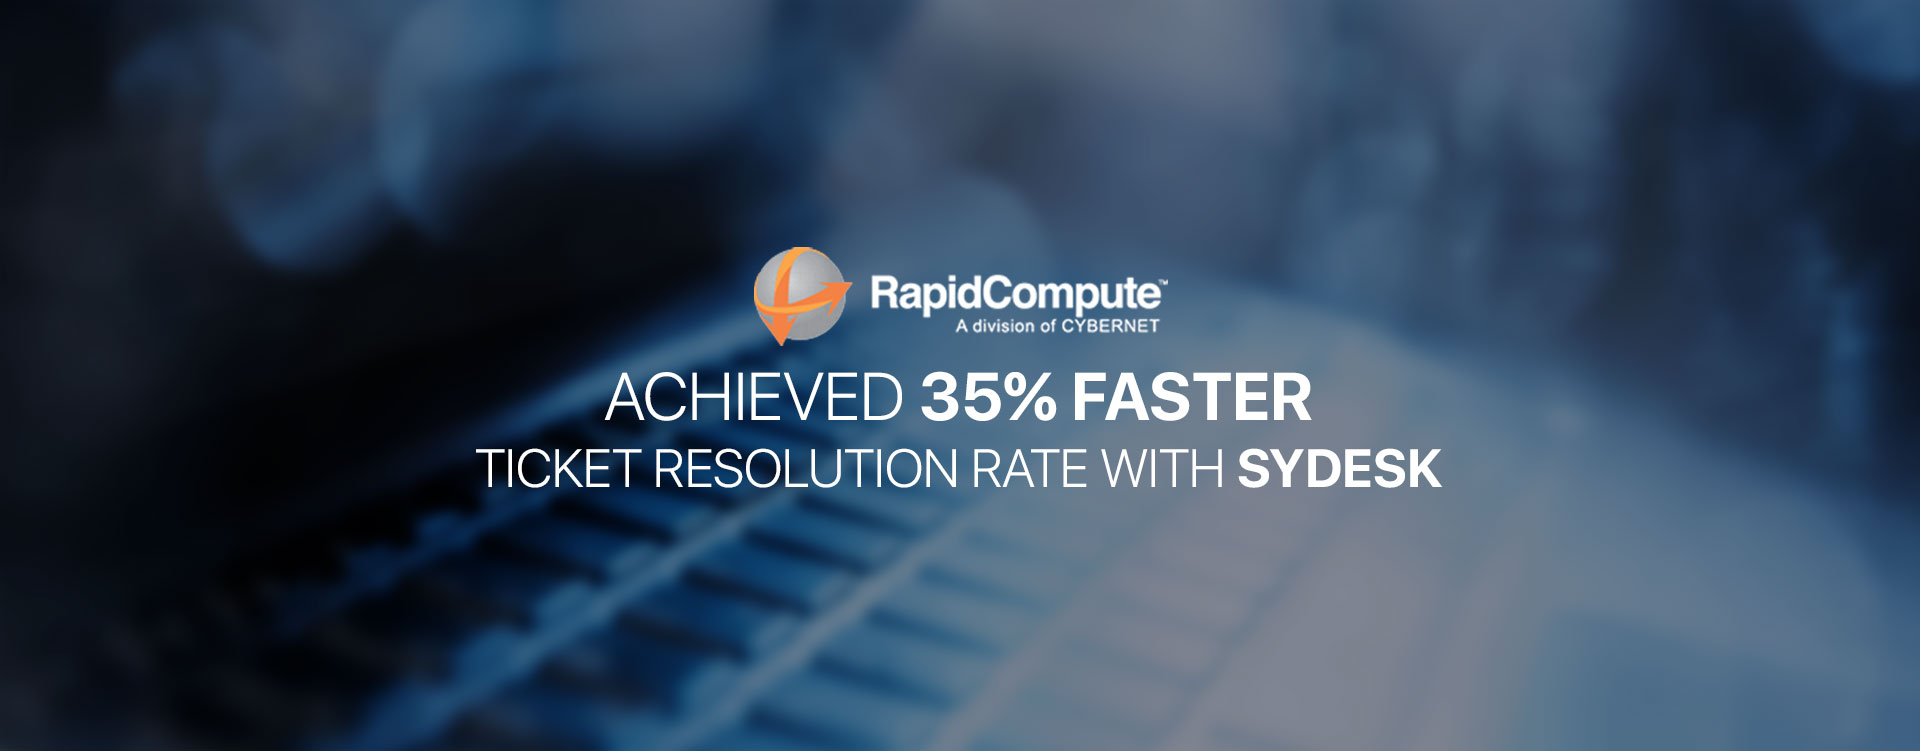 How SYDESK Helped RapidCompute to Achieve Faster Ticket Resolution Rate